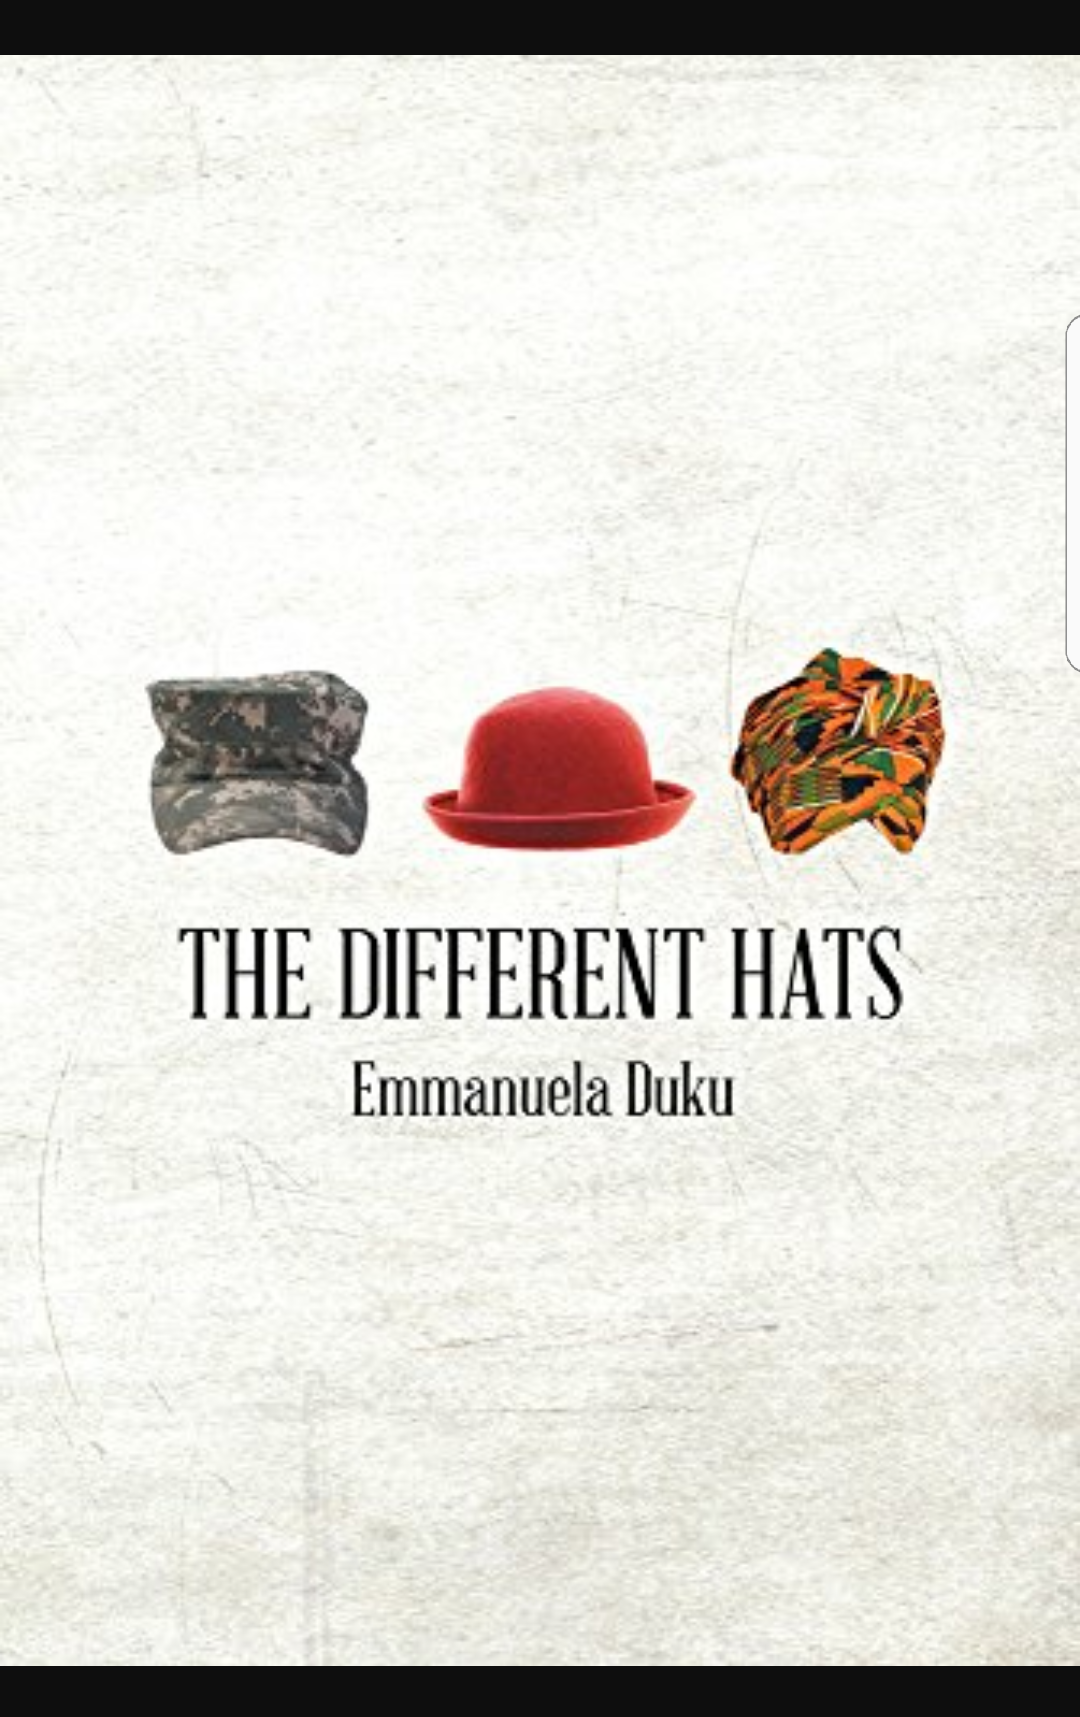 The Different Hats